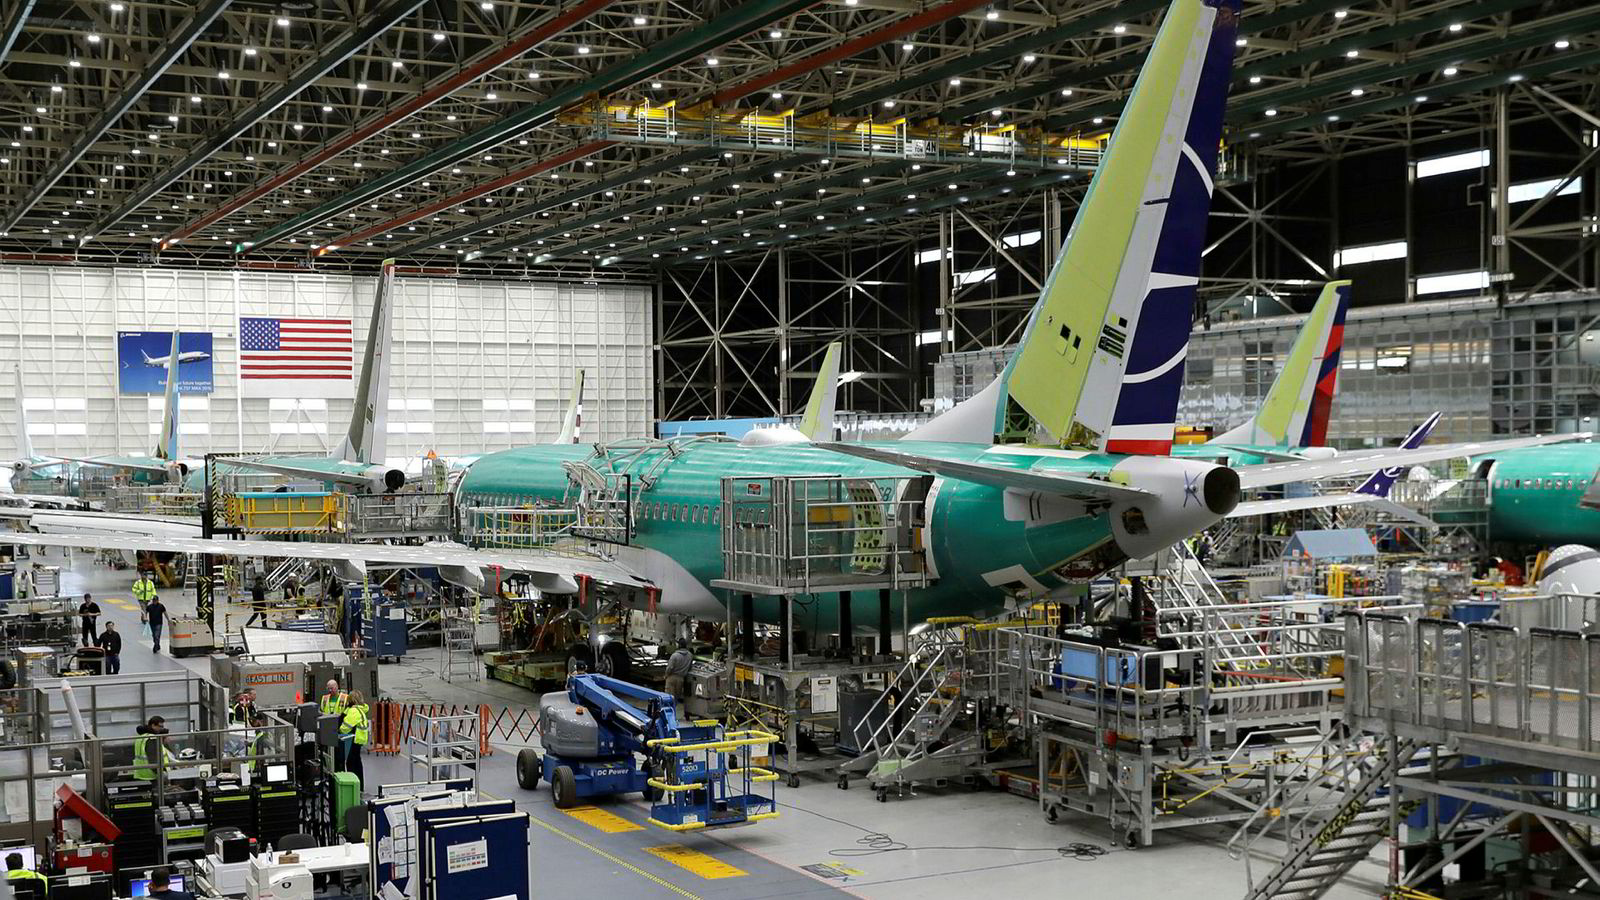 FILE - In this March 27, 2019, file photo people work on the Boeing 737 MAX 8 assembly line during a brief media tour in Boeing's 737 assembly facility in Renton, Wash. On Wednesday, May 1, the Institute for Supply Management, a trade group of purchasing managers, issues its index of manufacturing activity for April. (AP Photo/Ted S. Warren, File)